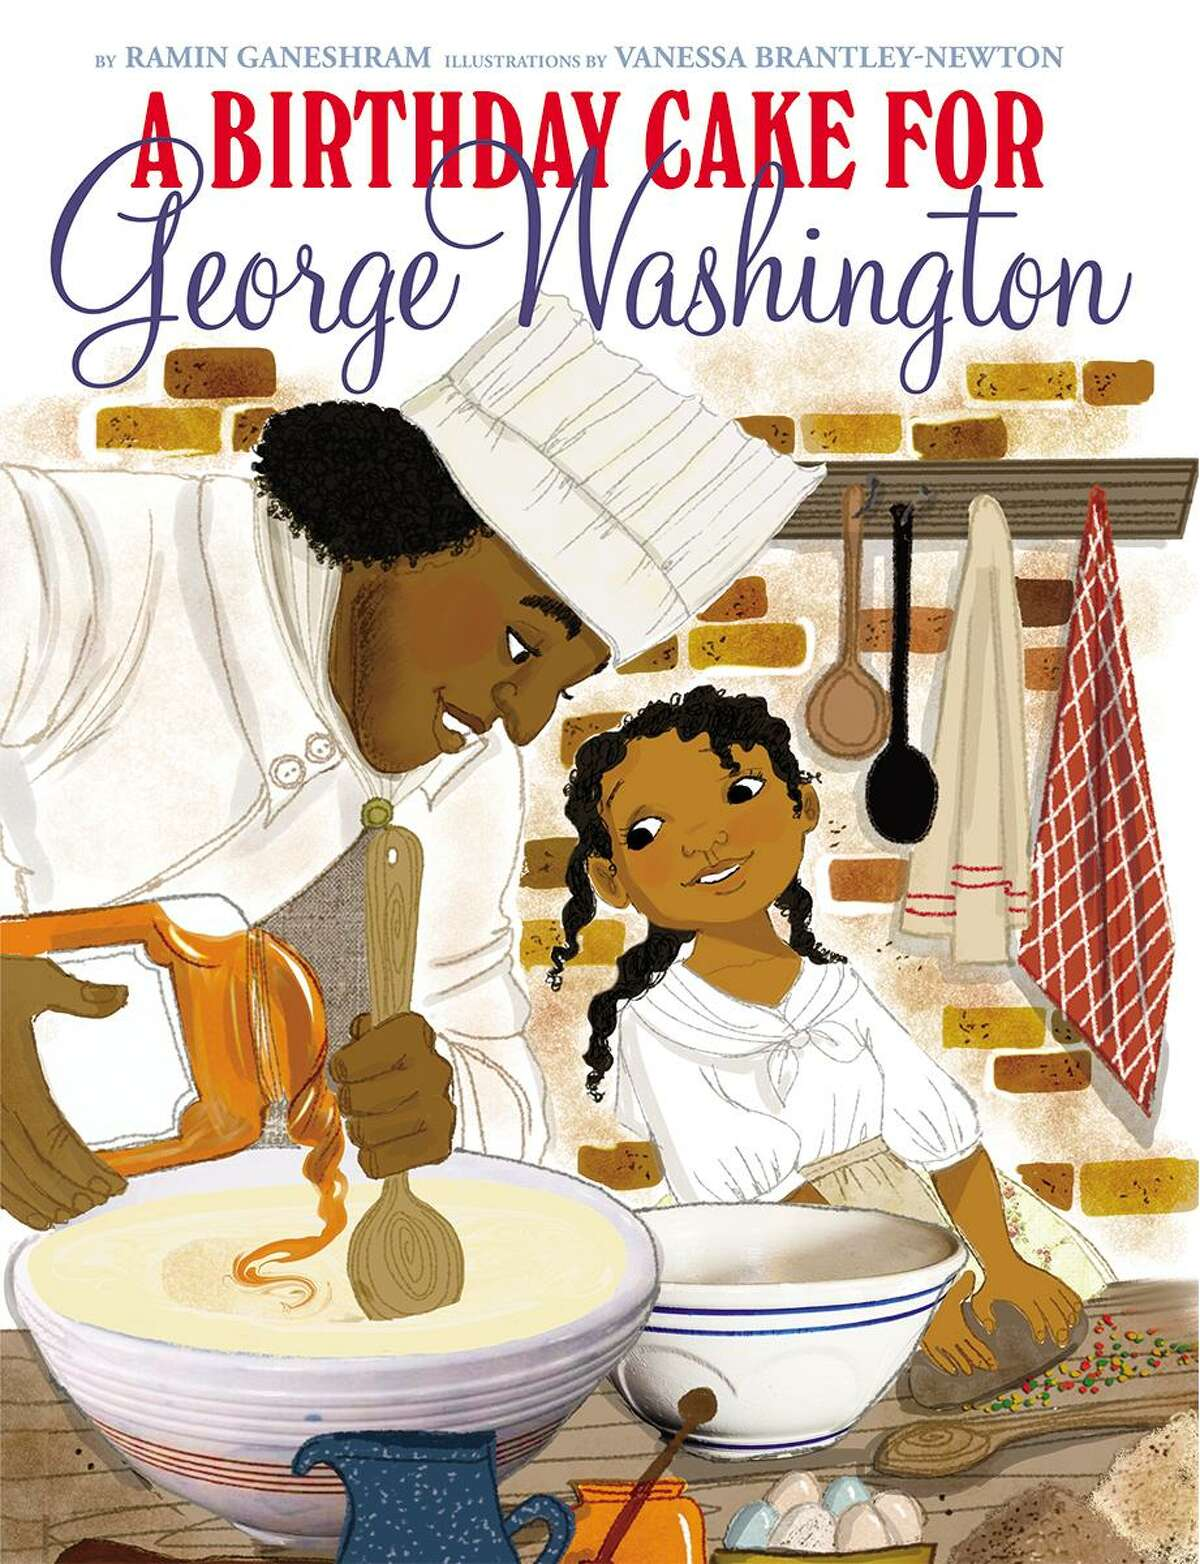 """""""A Birthday Cake for George Washington,"""" by Ramin Ganeshram with illustrations by Vanessa Brantley-Newtown depicted contented slaves, causing an uproar on social media."""